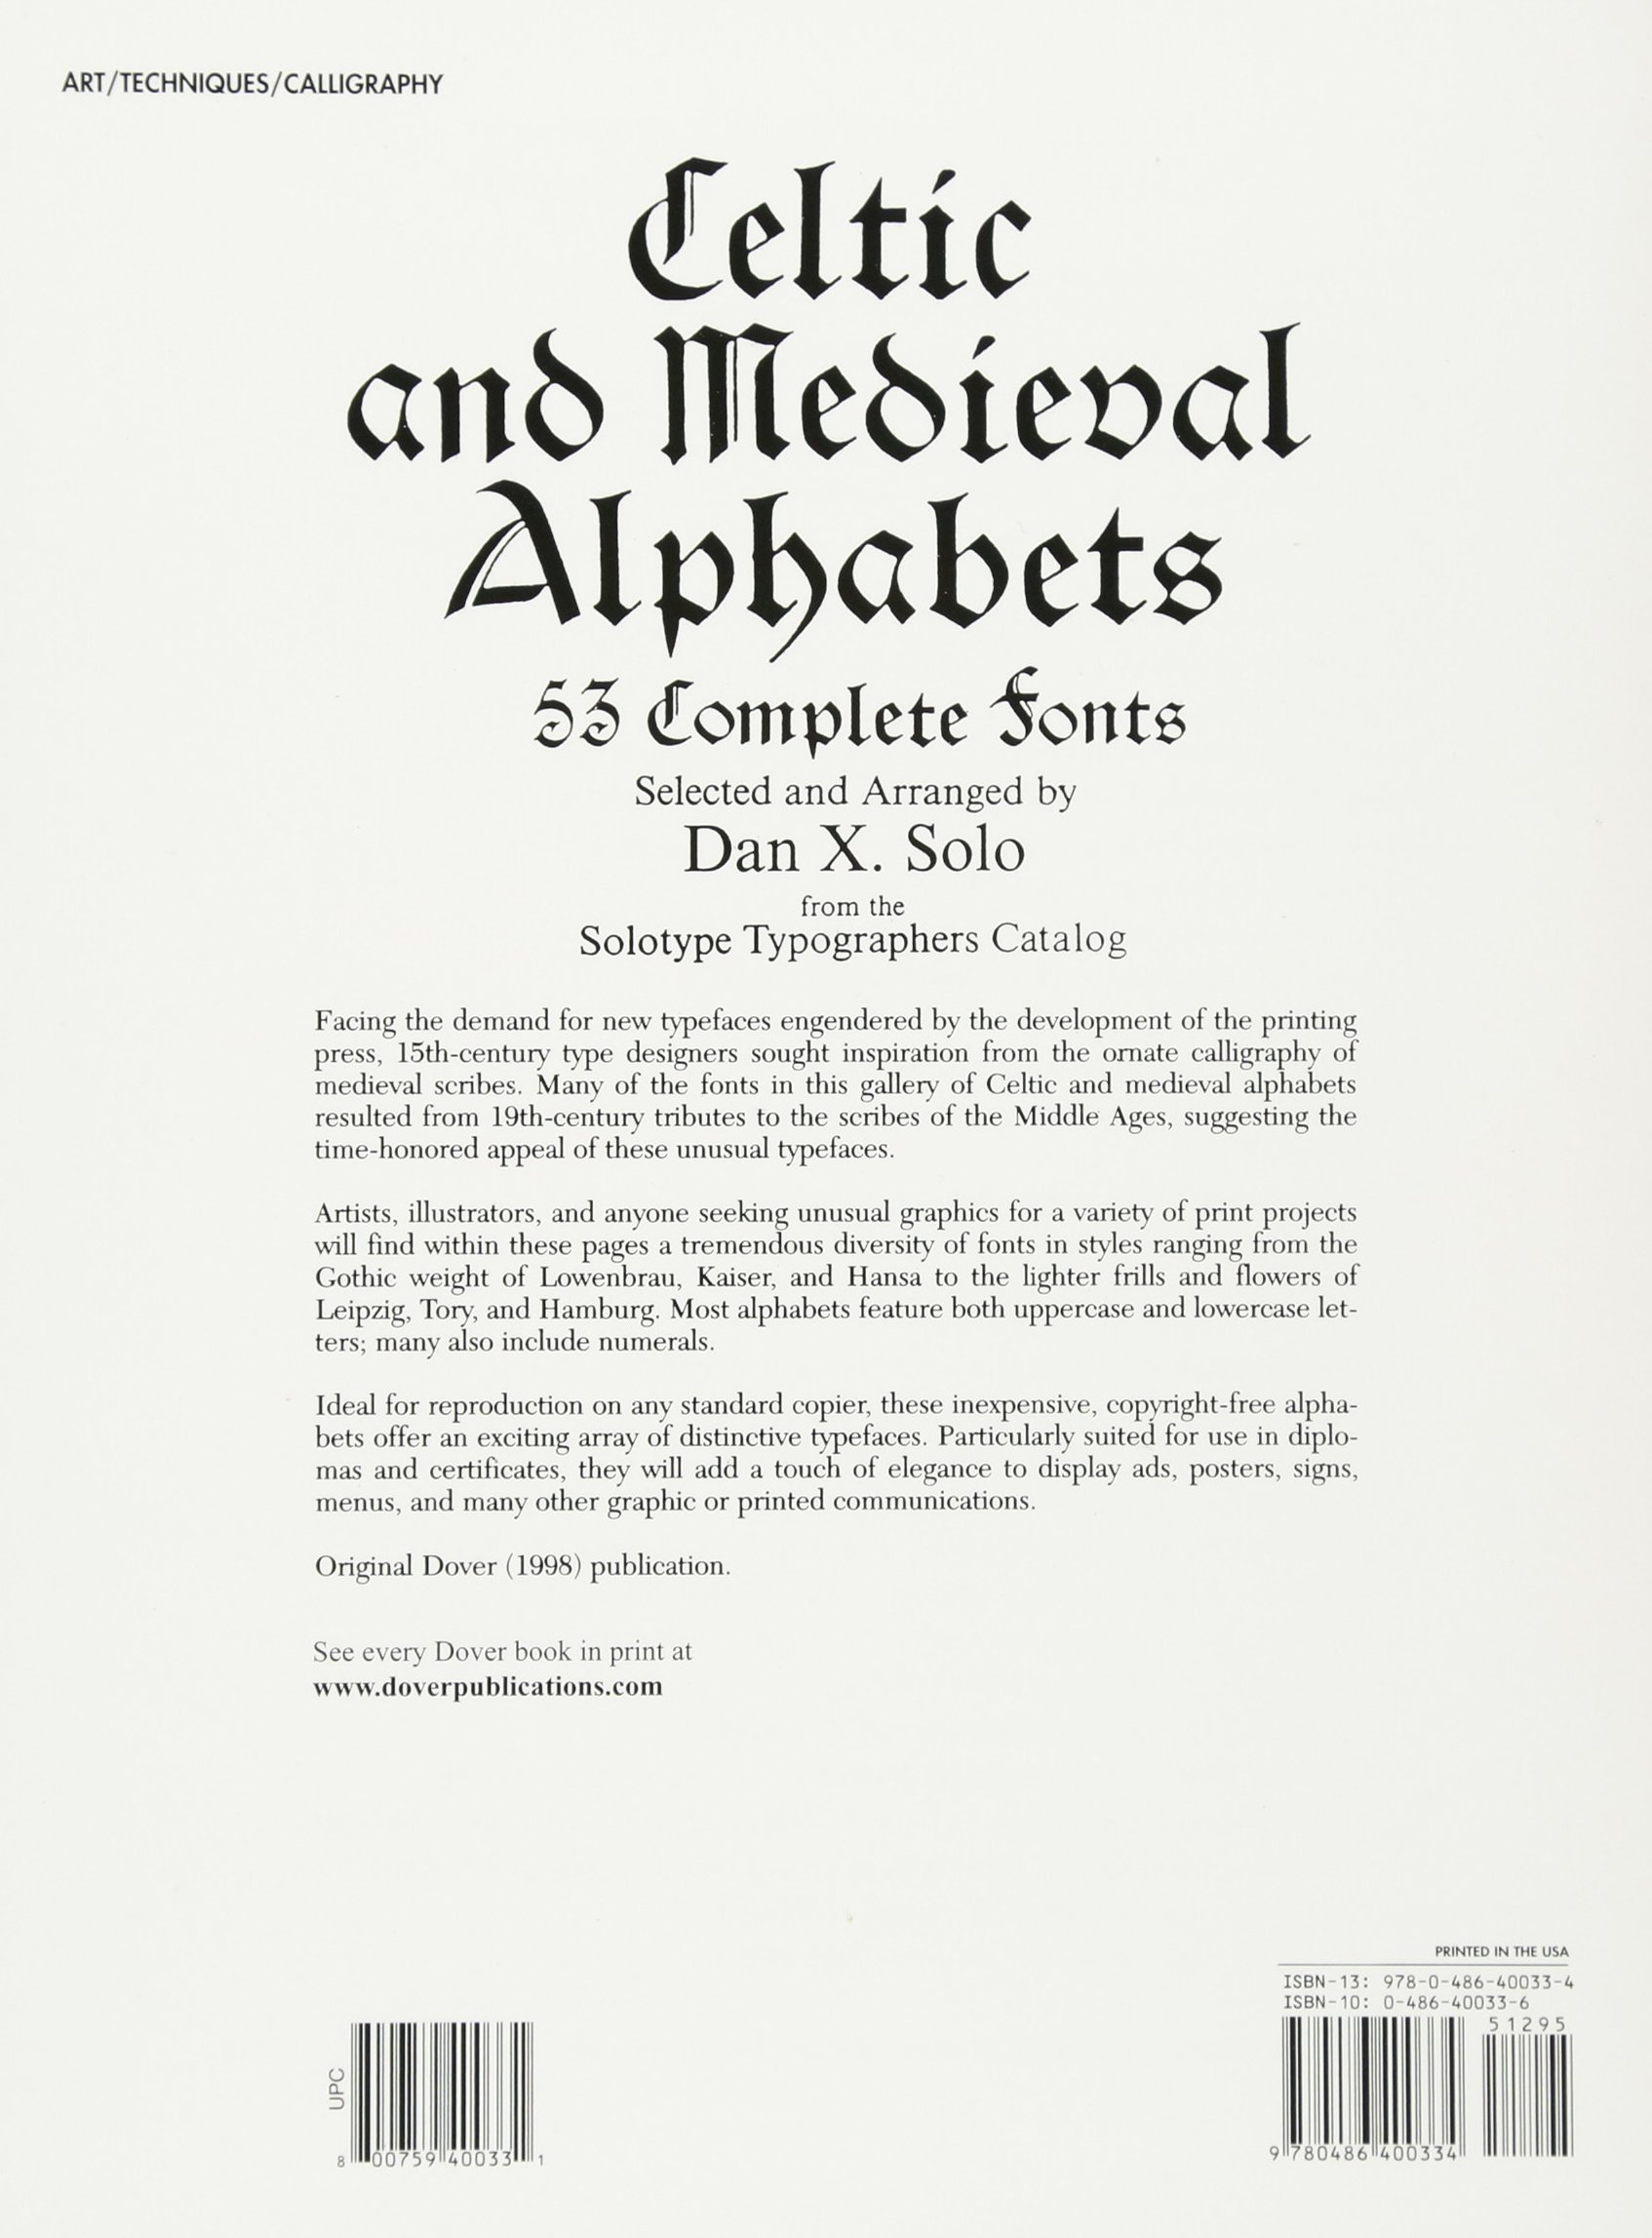 Celtic And Medieval Alphabets 53 Complete Fonts Lettering Calligraphy Typography Dan X Solo 0800759400331 Amazon Books